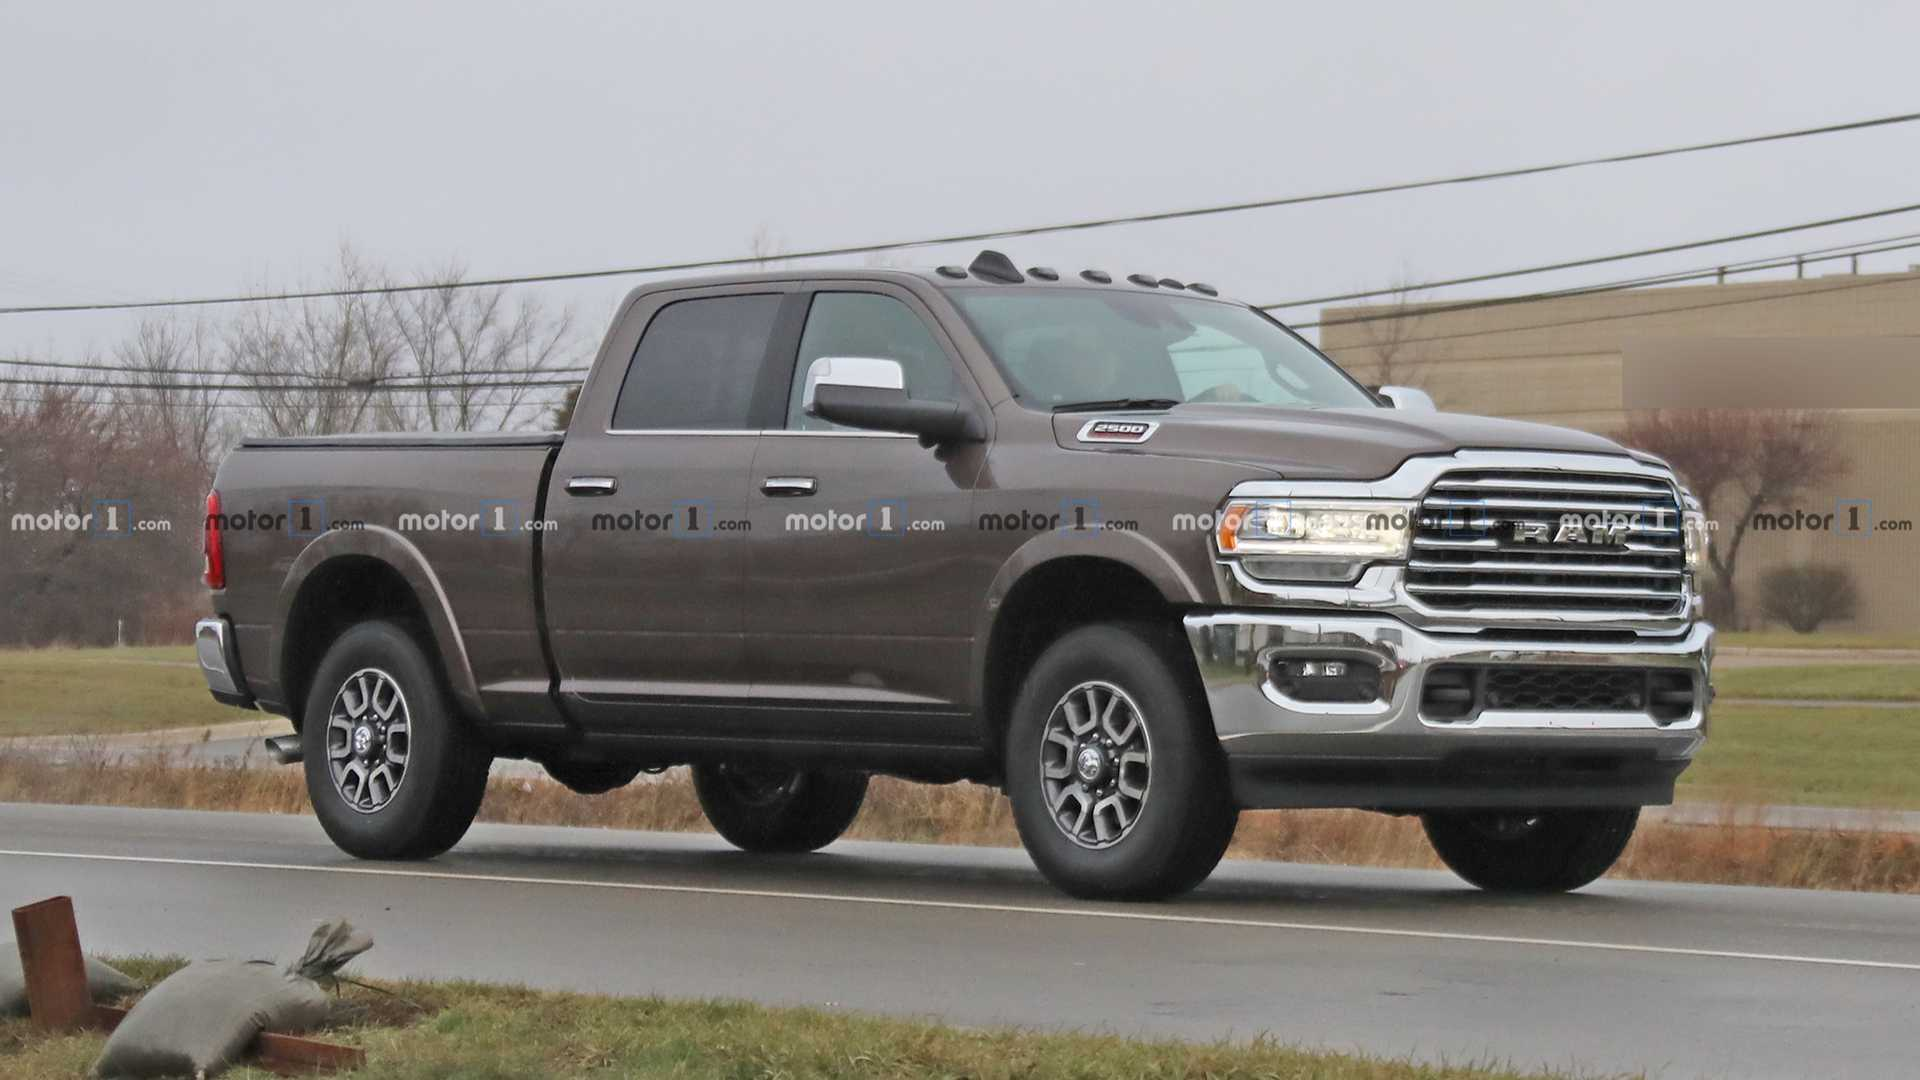 83 Best Review Dodge Dually 2020 Photos by Dodge Dually 2020